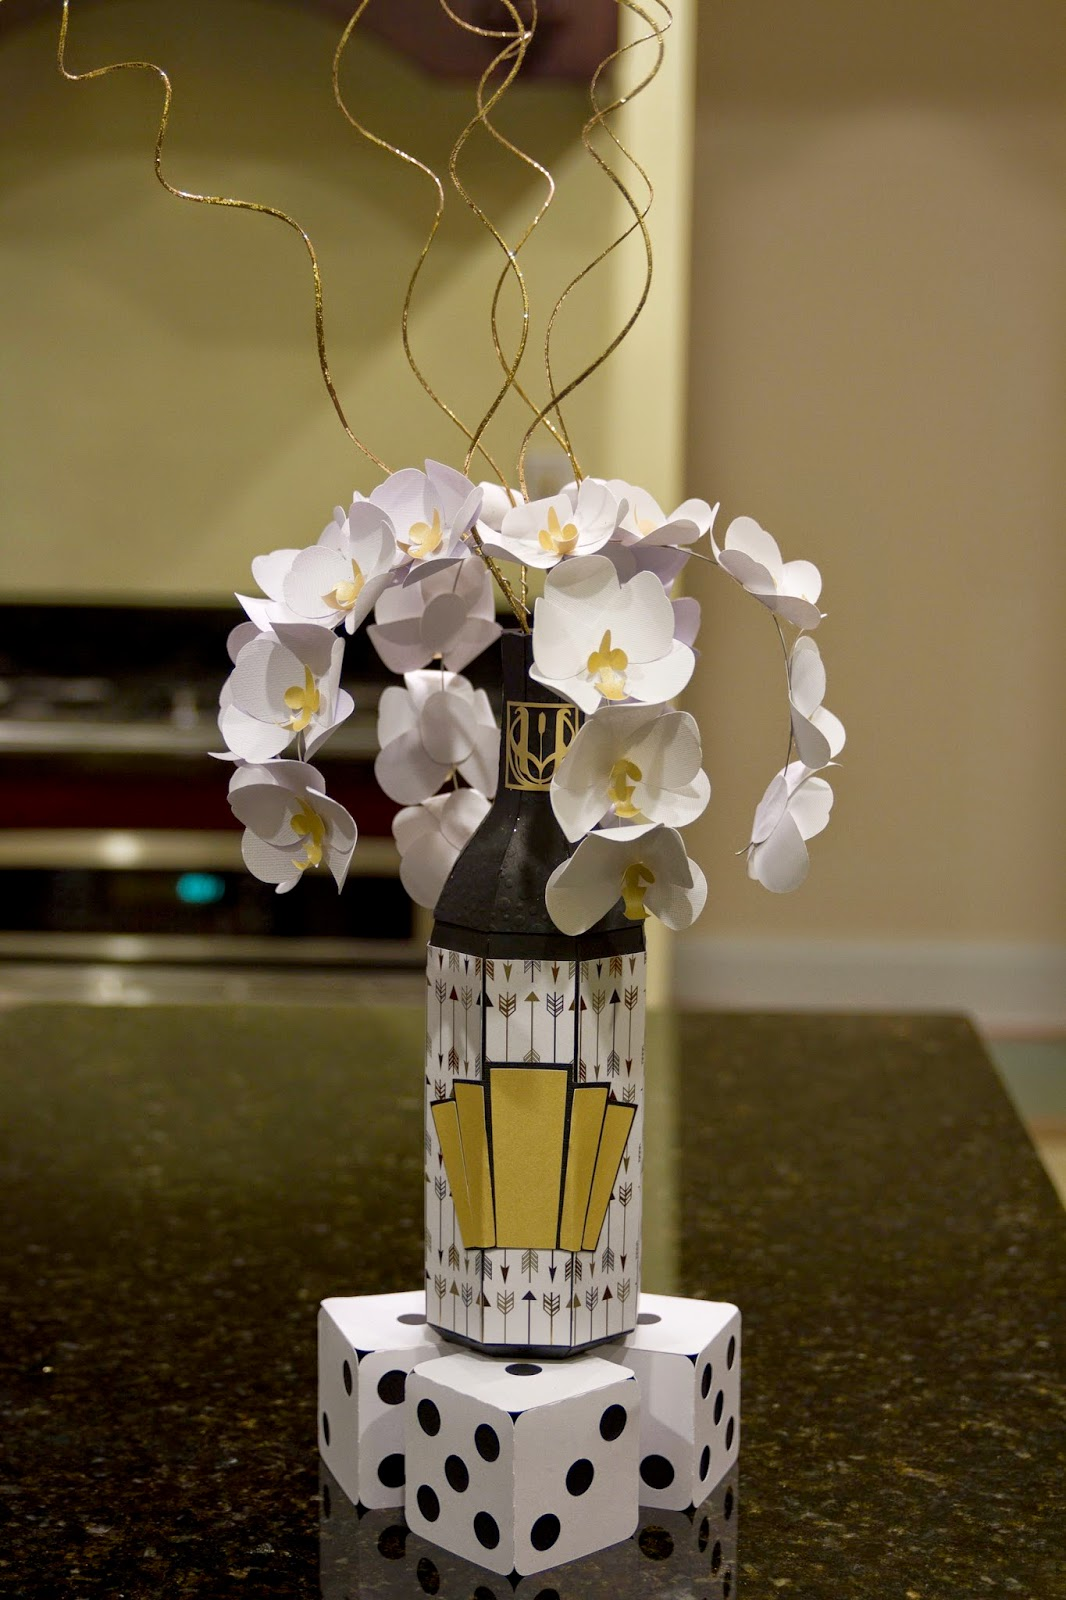 paper champagne bottle with orchids casading out of the top standing on top of large dice